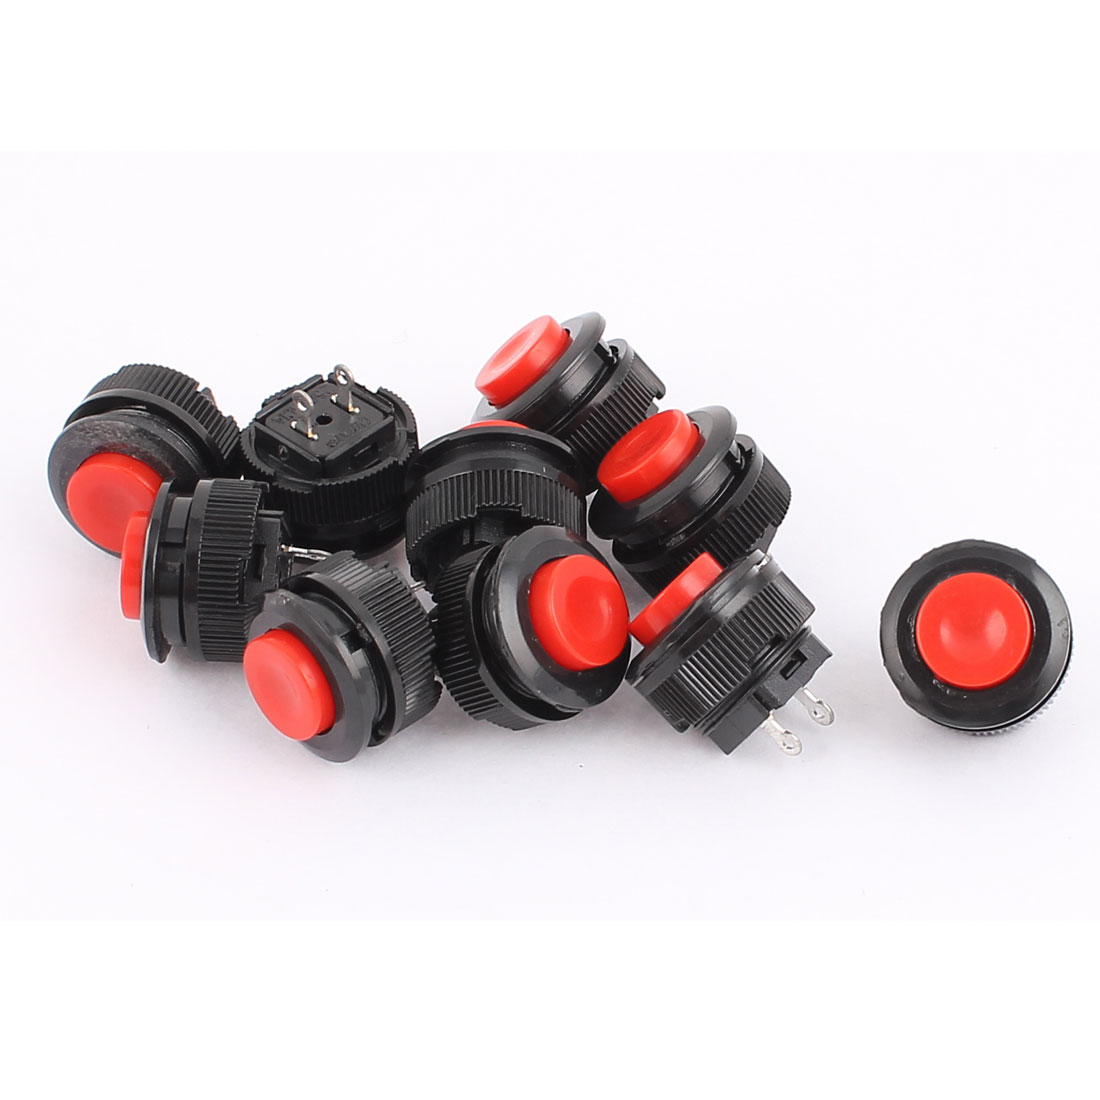 10 Pcs AC 250V 1A 2Terminals SPST OFF(ON) N/O Red Round Momentary Push Button Switch